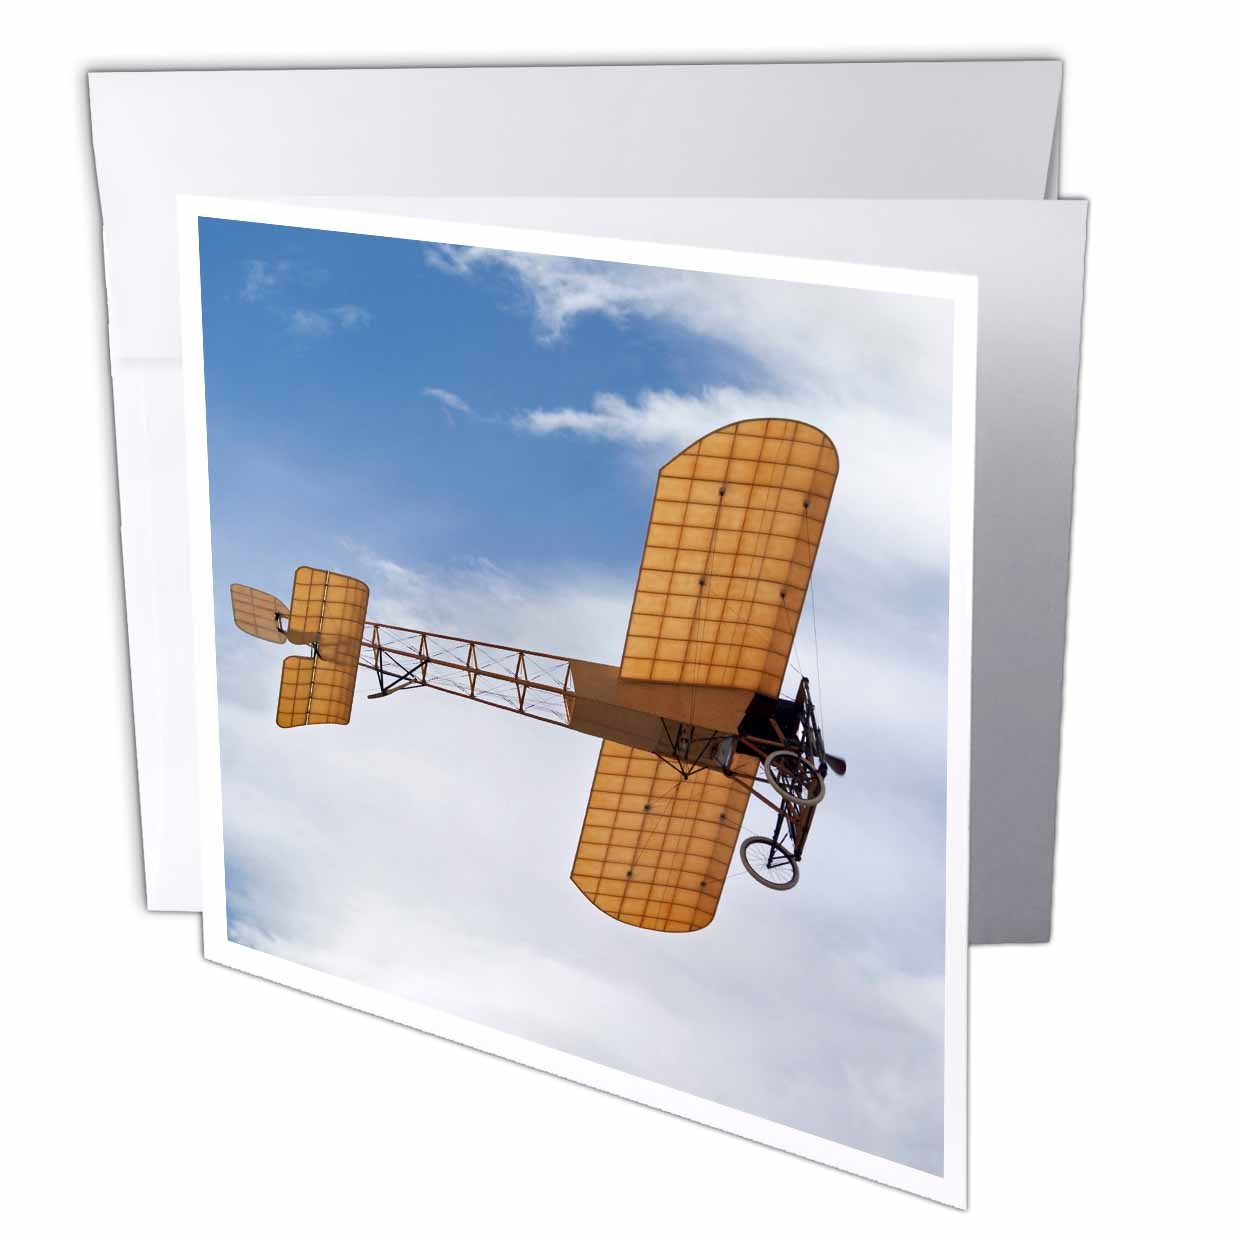 3dRose New Zealand, Warbirds Over Wanaka, Vintage Airplanes-AU02 DWA5957 - David Wall, Greeting Cards, 6 x 6 inches, set of 6